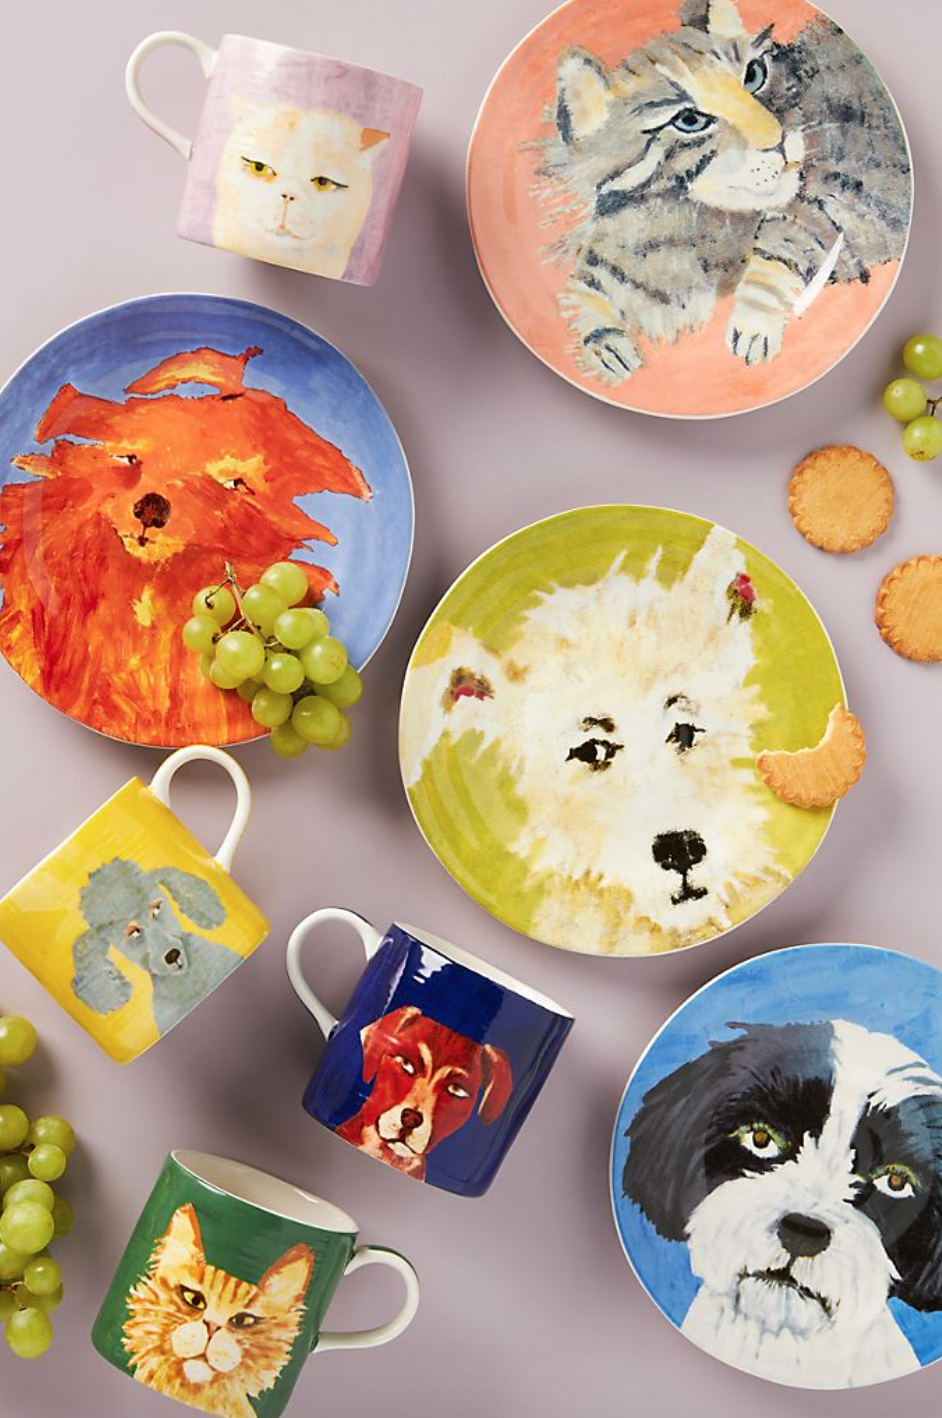 Carole Akins Furry Friends Dessert Plate (Photo via Anthropologie)